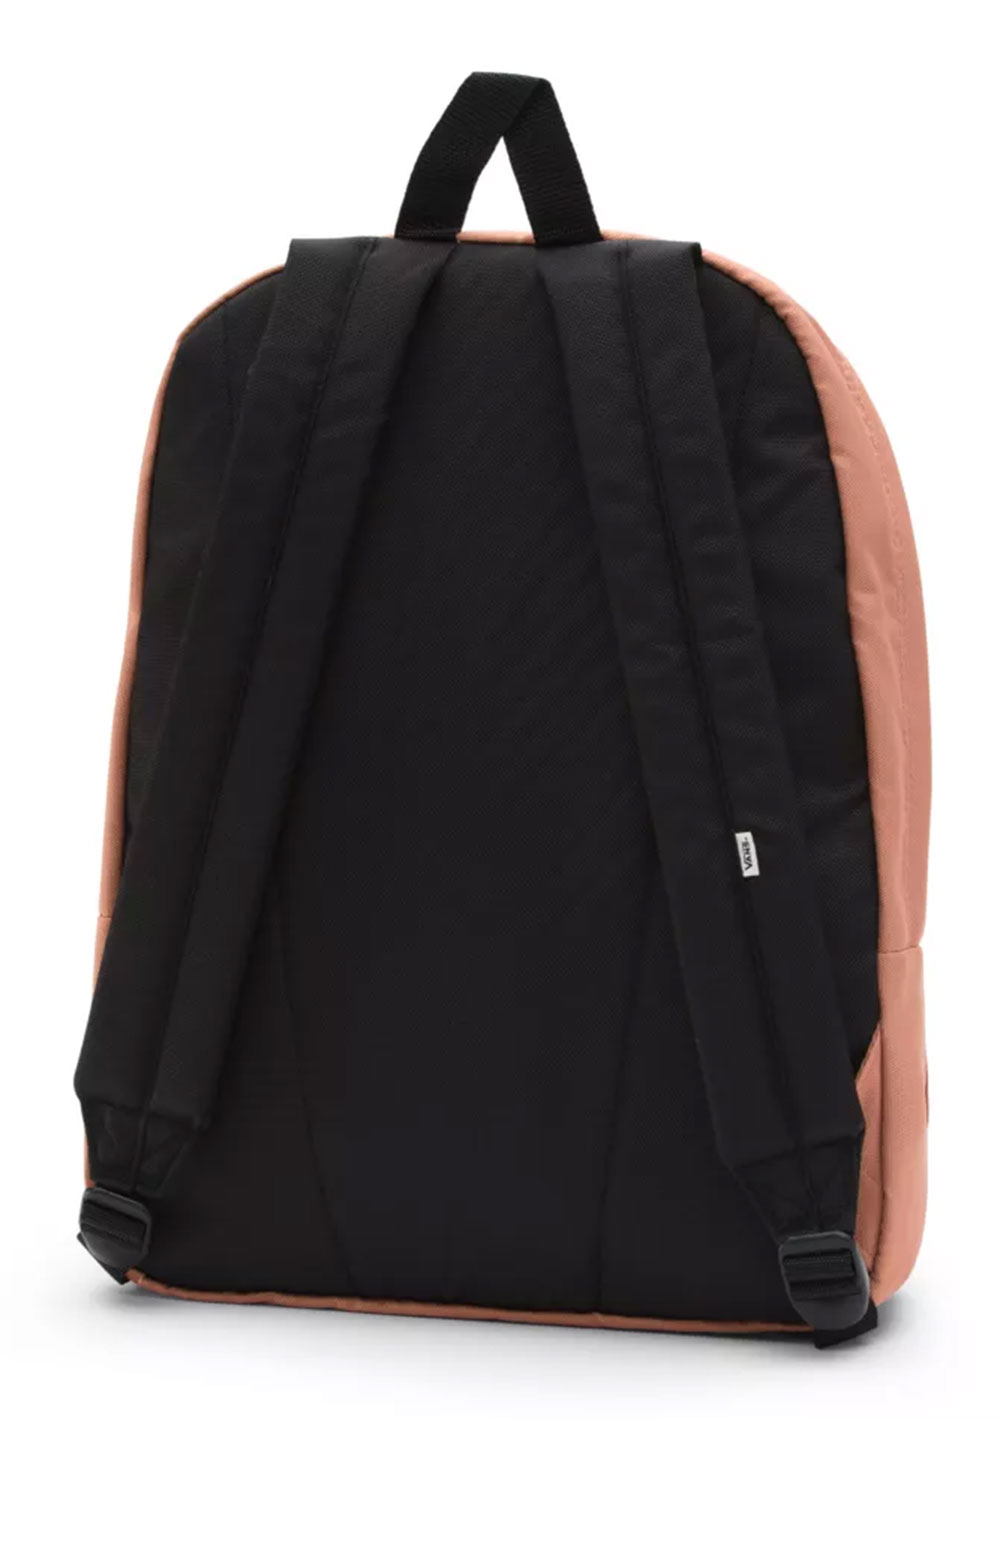 Realm Backpack - Rose Dawn 2